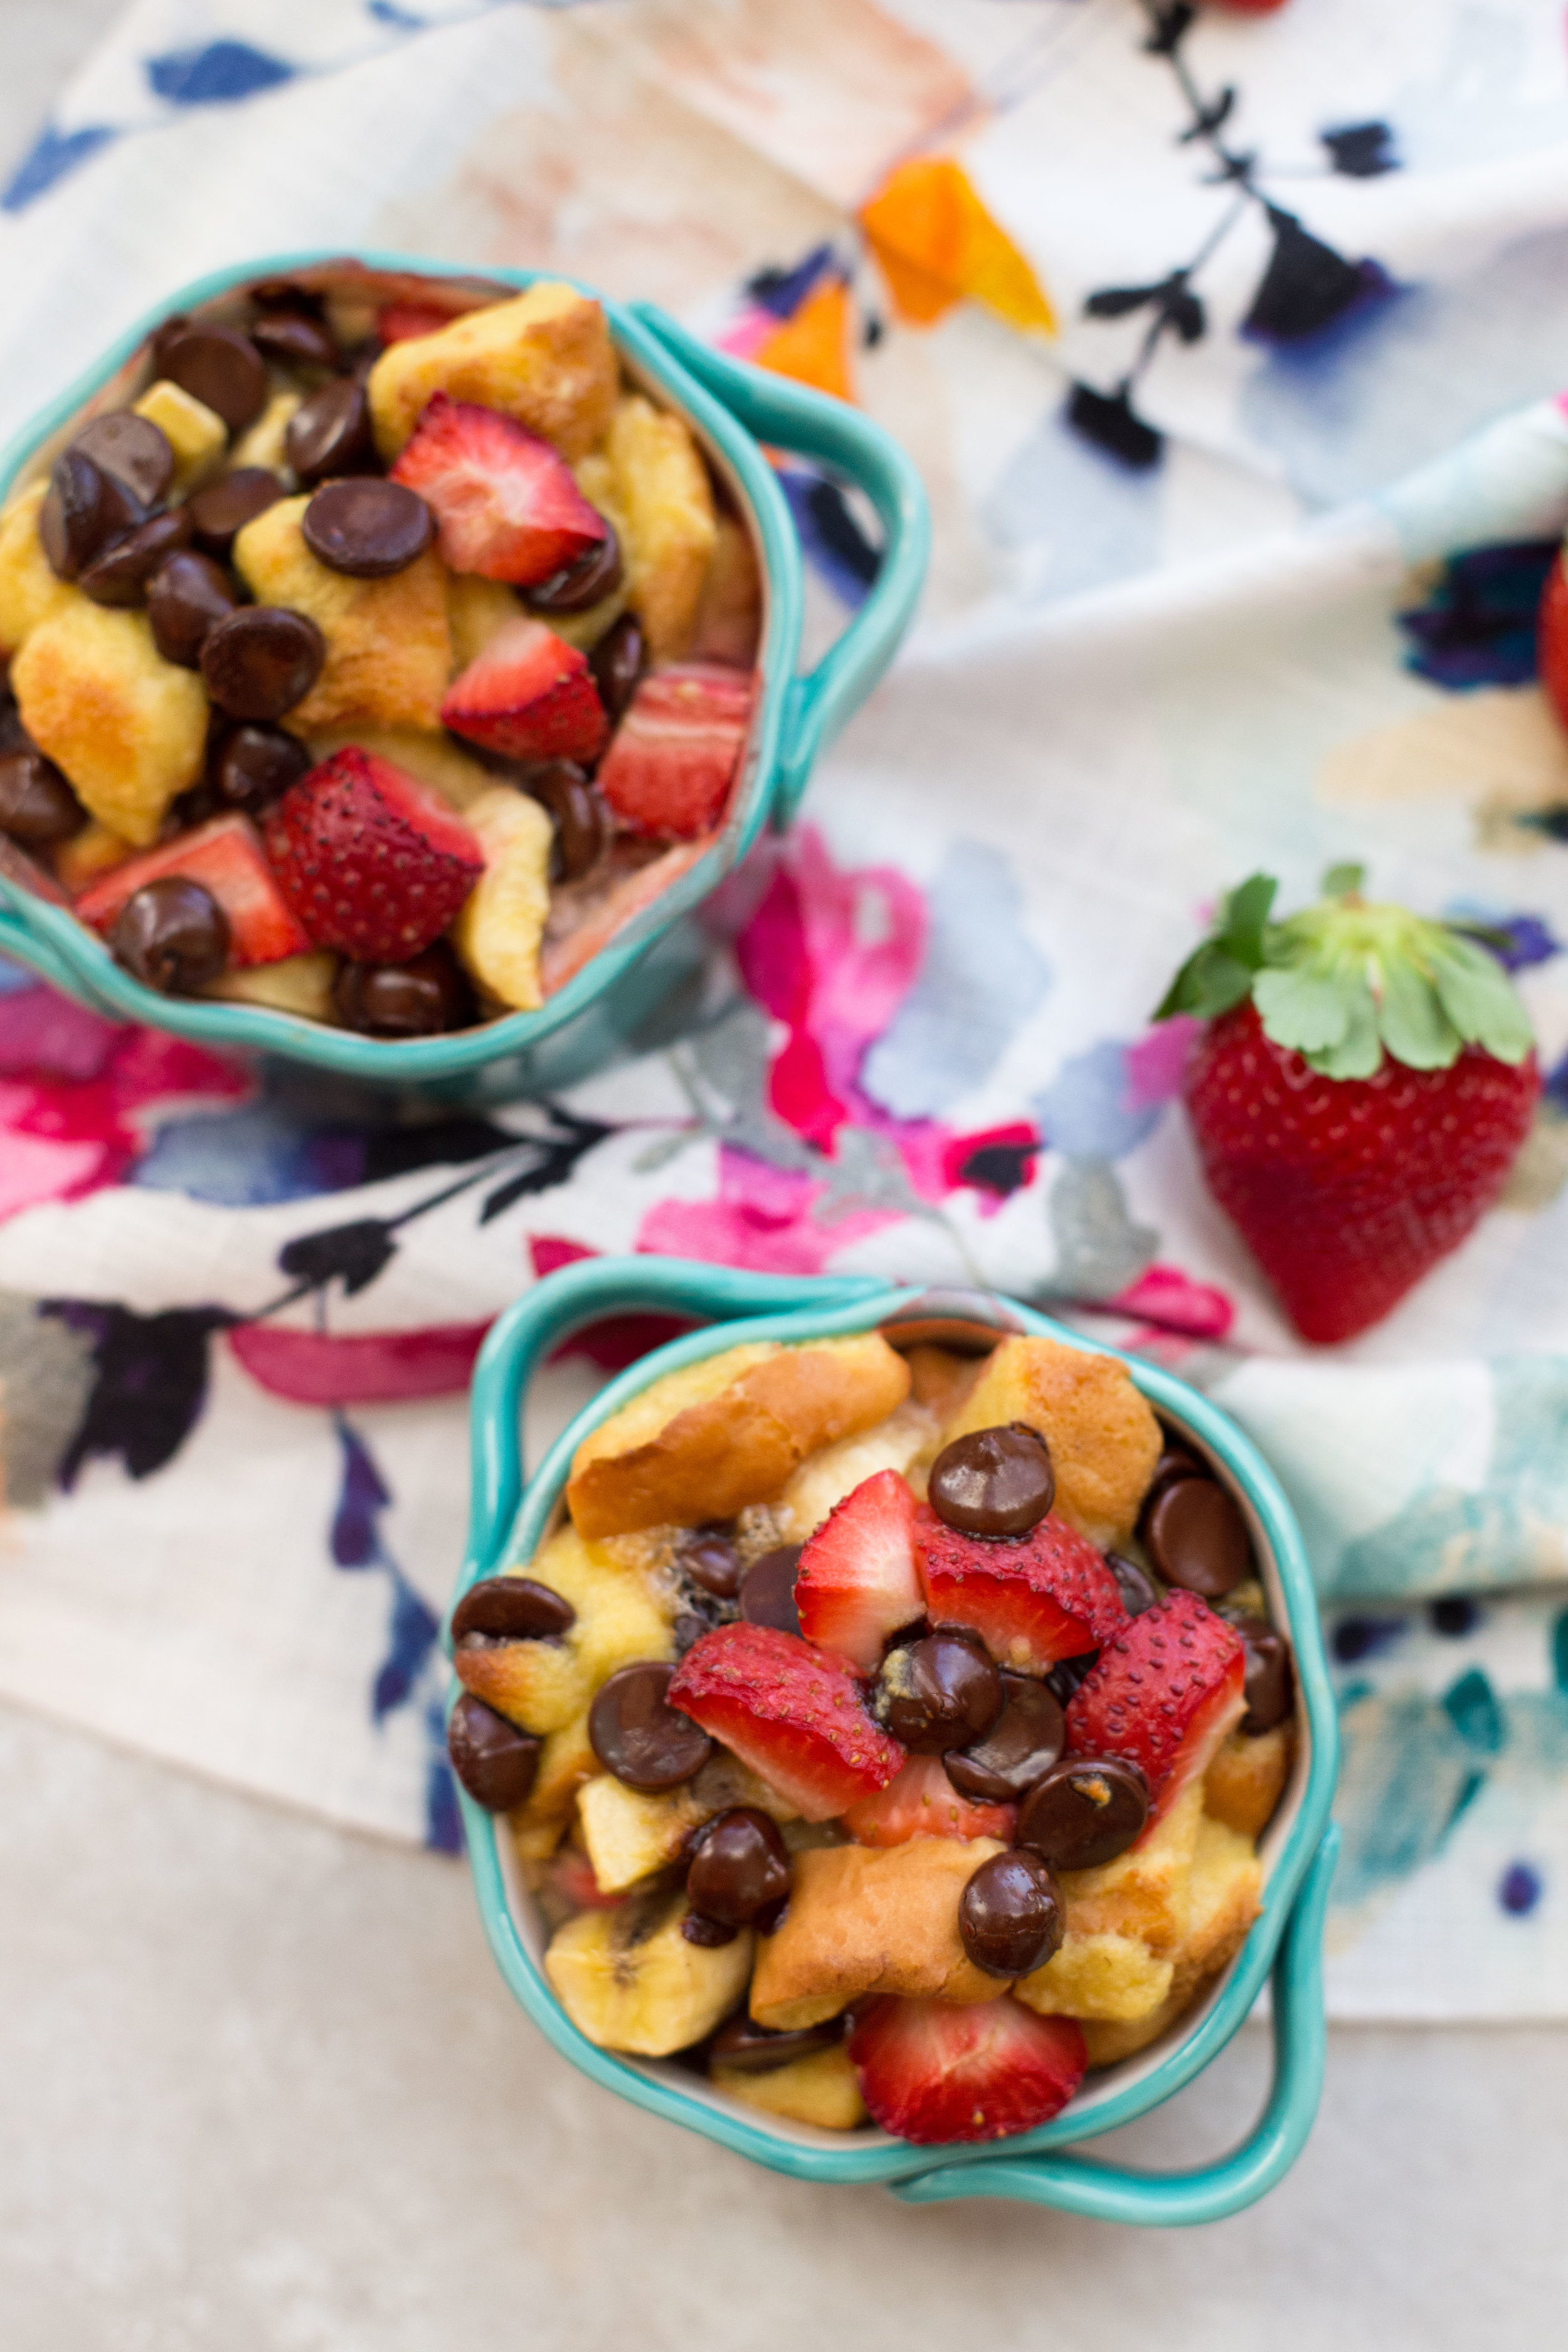 If you're making dinner at home, or going out for a meal and returning home for drinks and dessert this Valentine's Day, this recipe for Strawberry Banana Bread Pudding for two is so easy anyone can handle it.